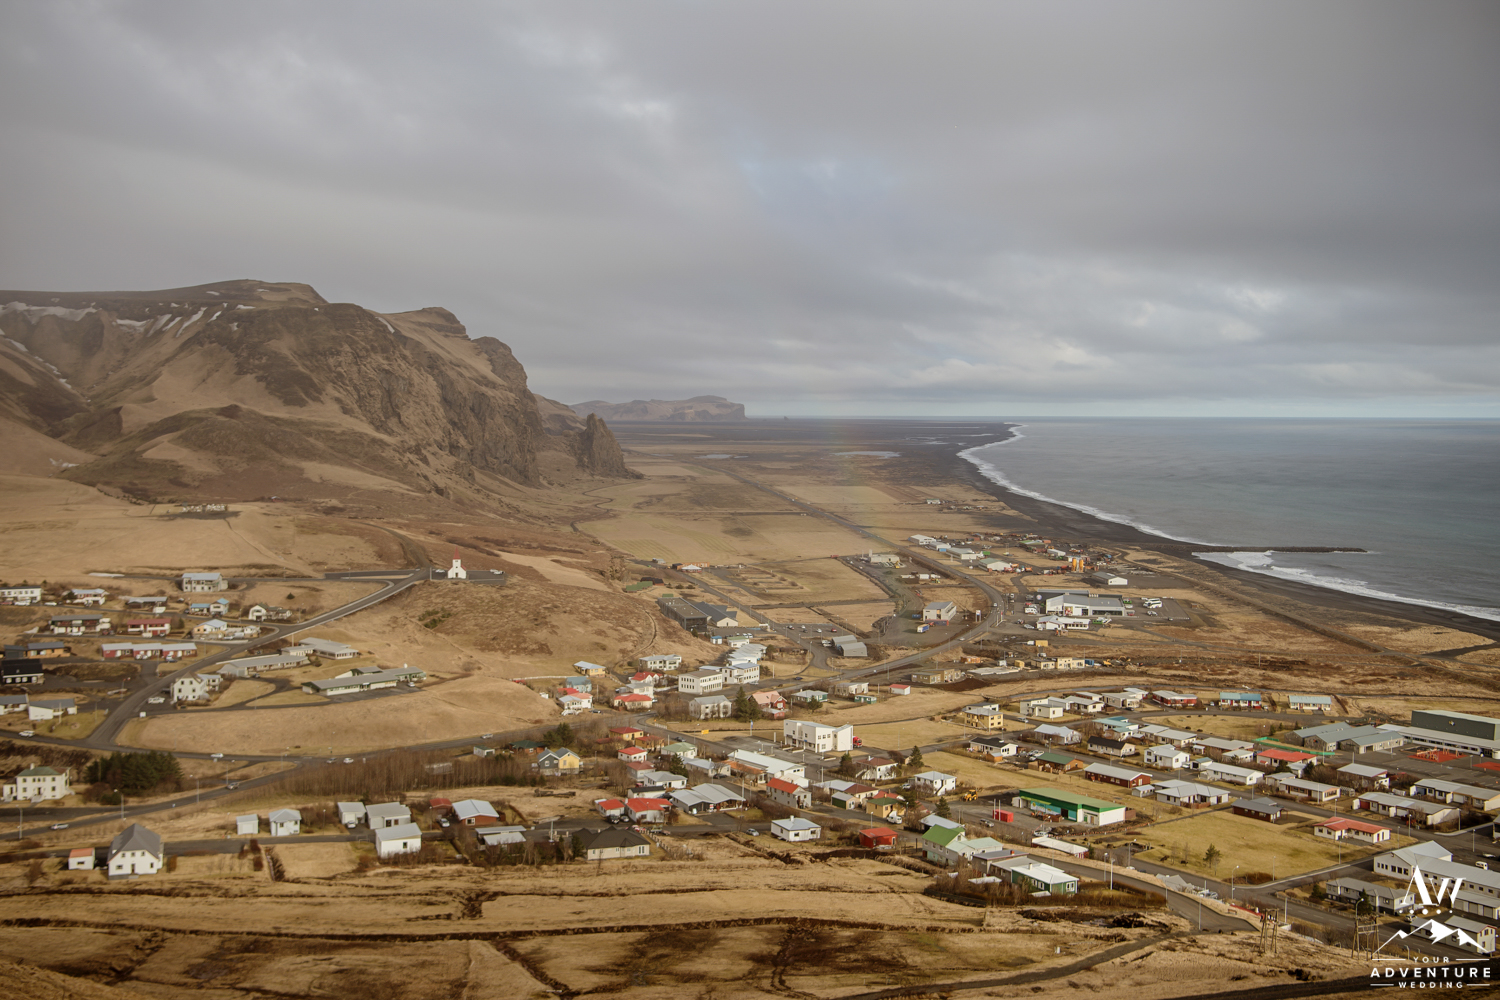 Overview of the Town of Vik Iceland